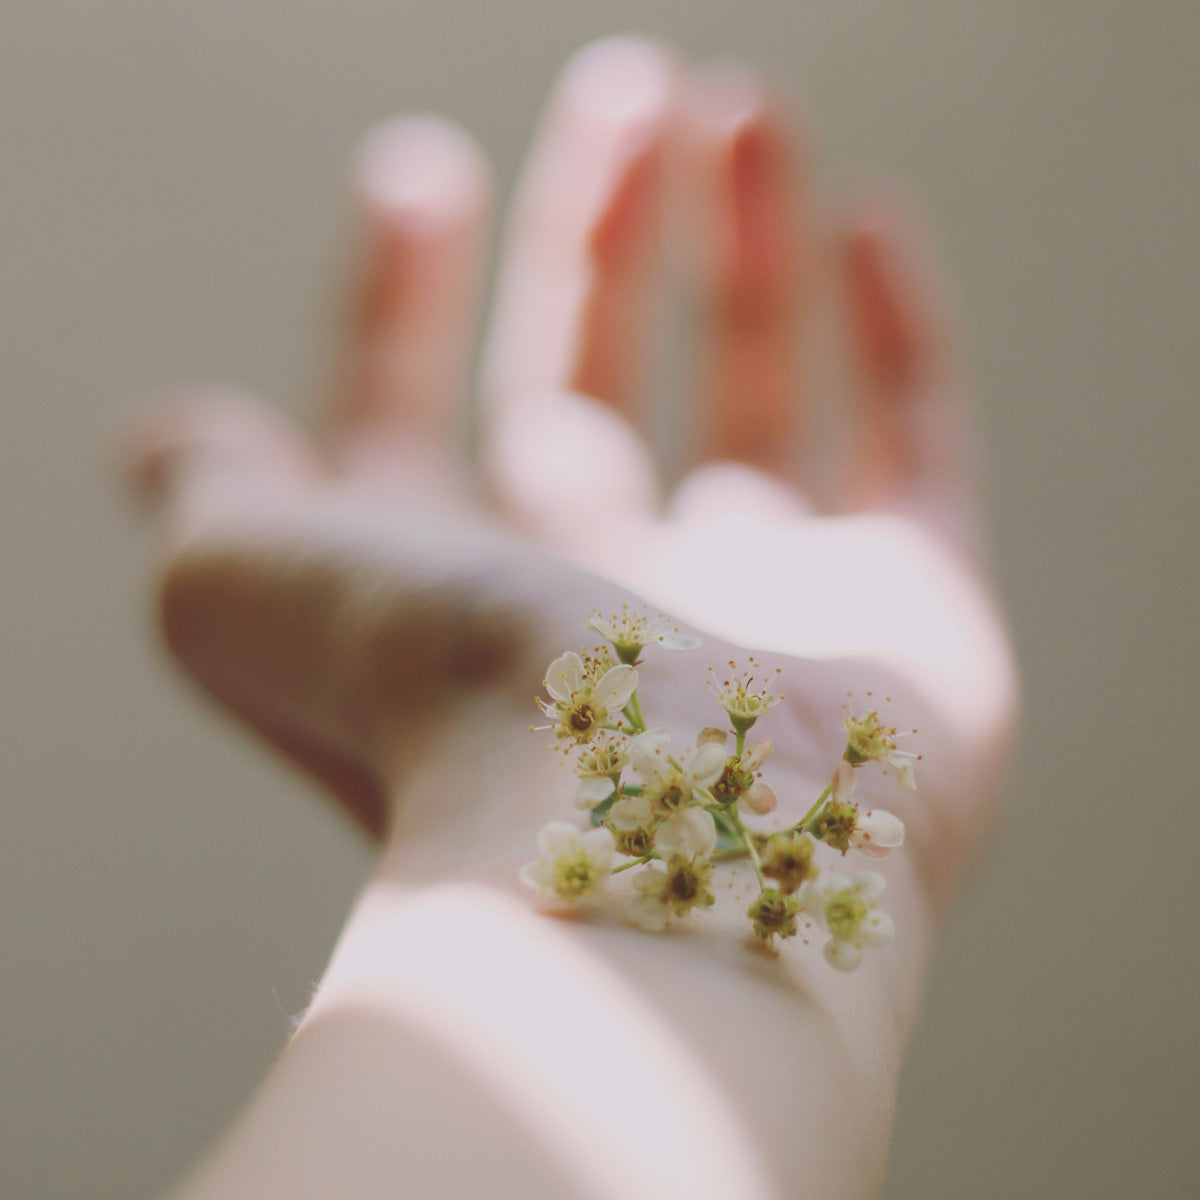 flowers balanced on wrist